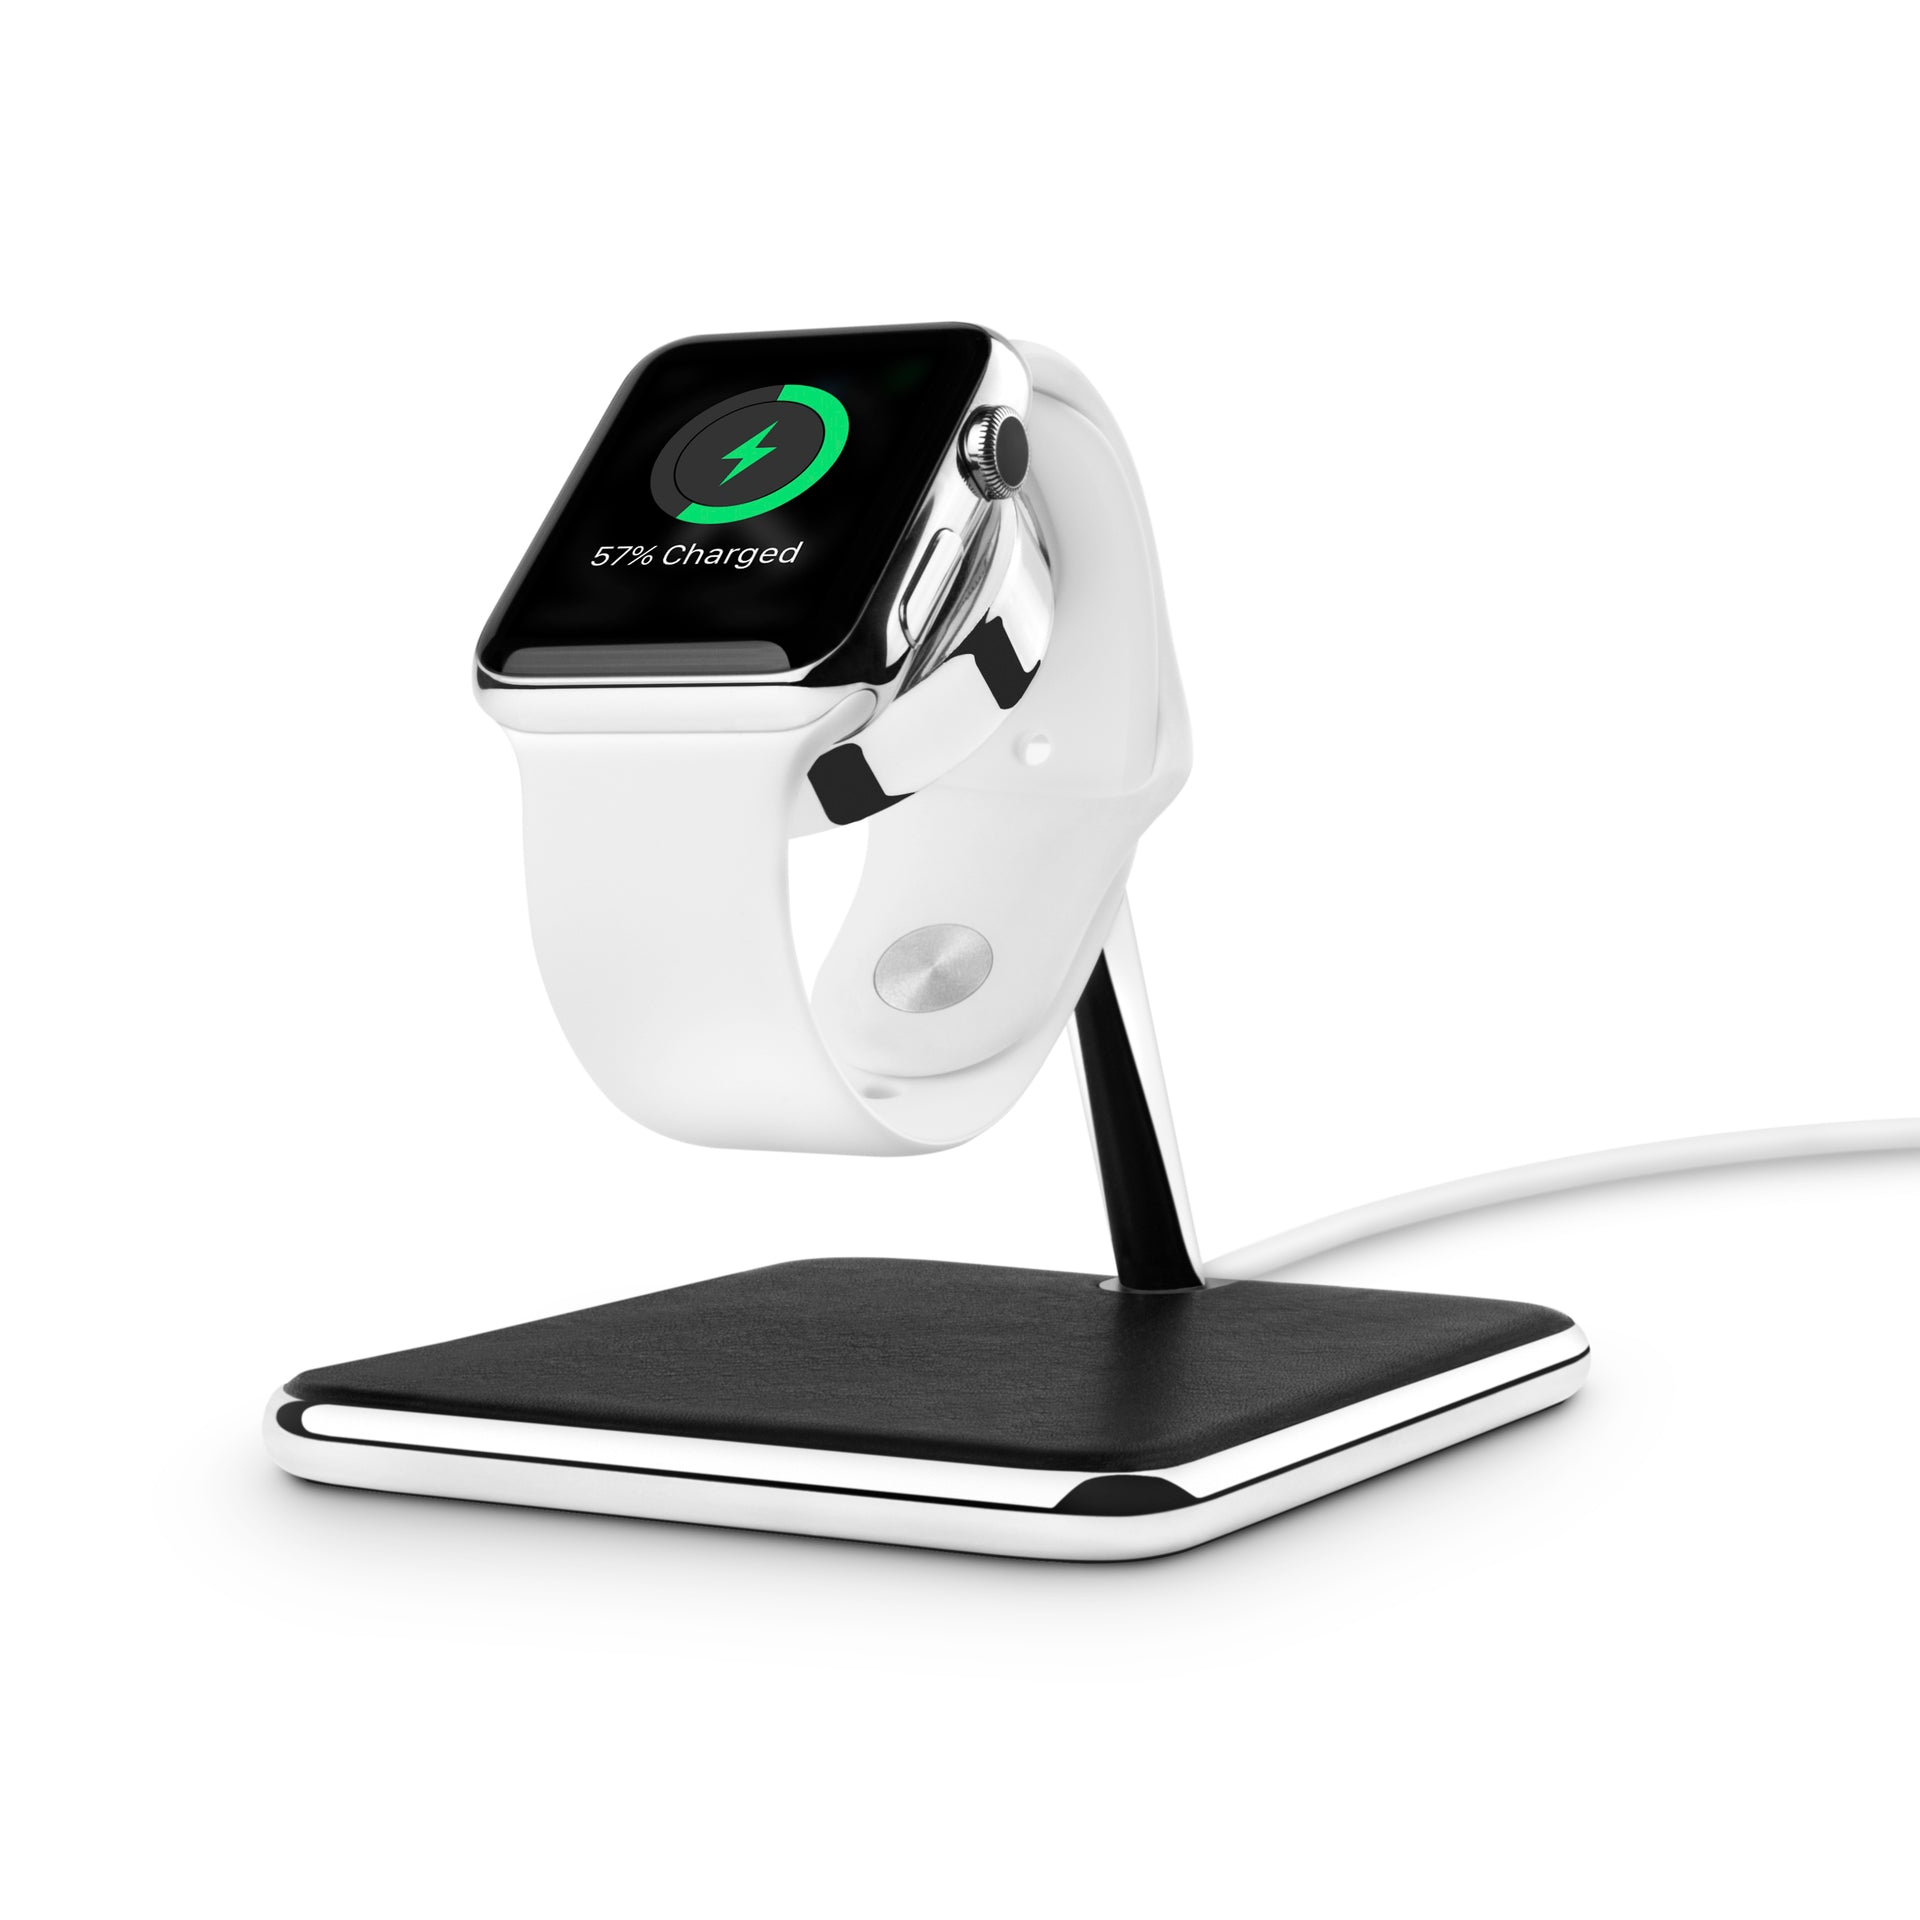 Meet Forté. The first full-featured Apple Watch stand worthy of the Apple Store.